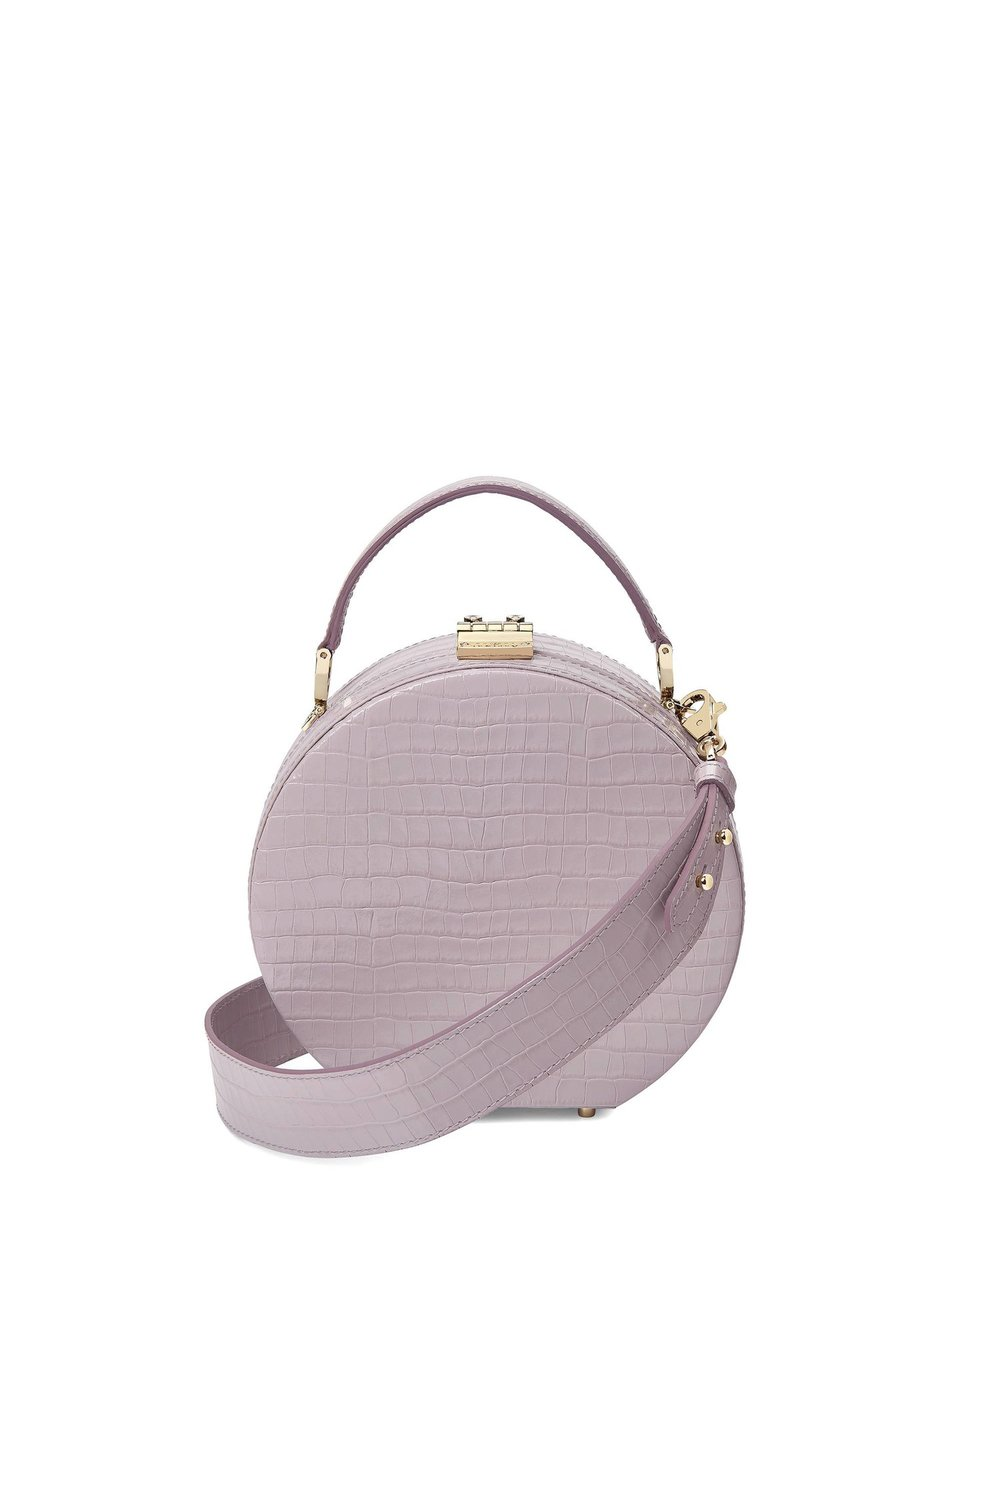 Aspinal of London Mini Hat Box Bag , $870